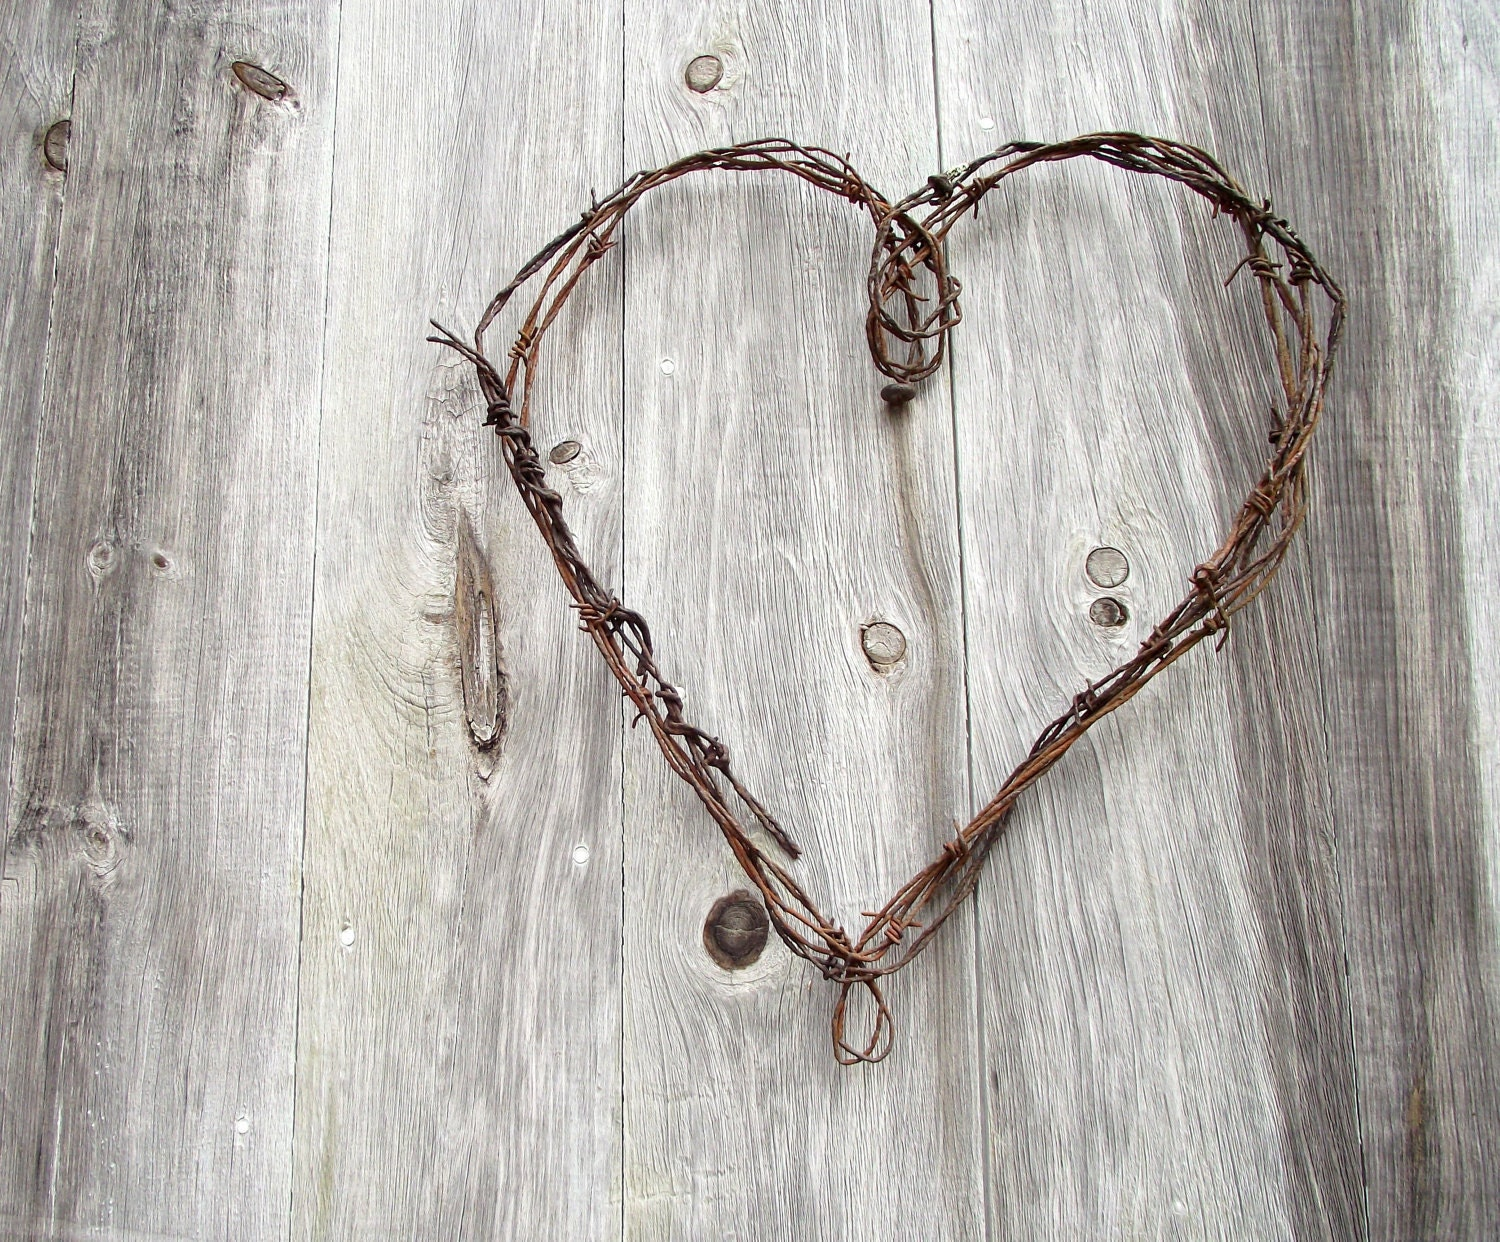 Wire Heart Wreath Antique Rustic Barbed Wire Farmhouse By